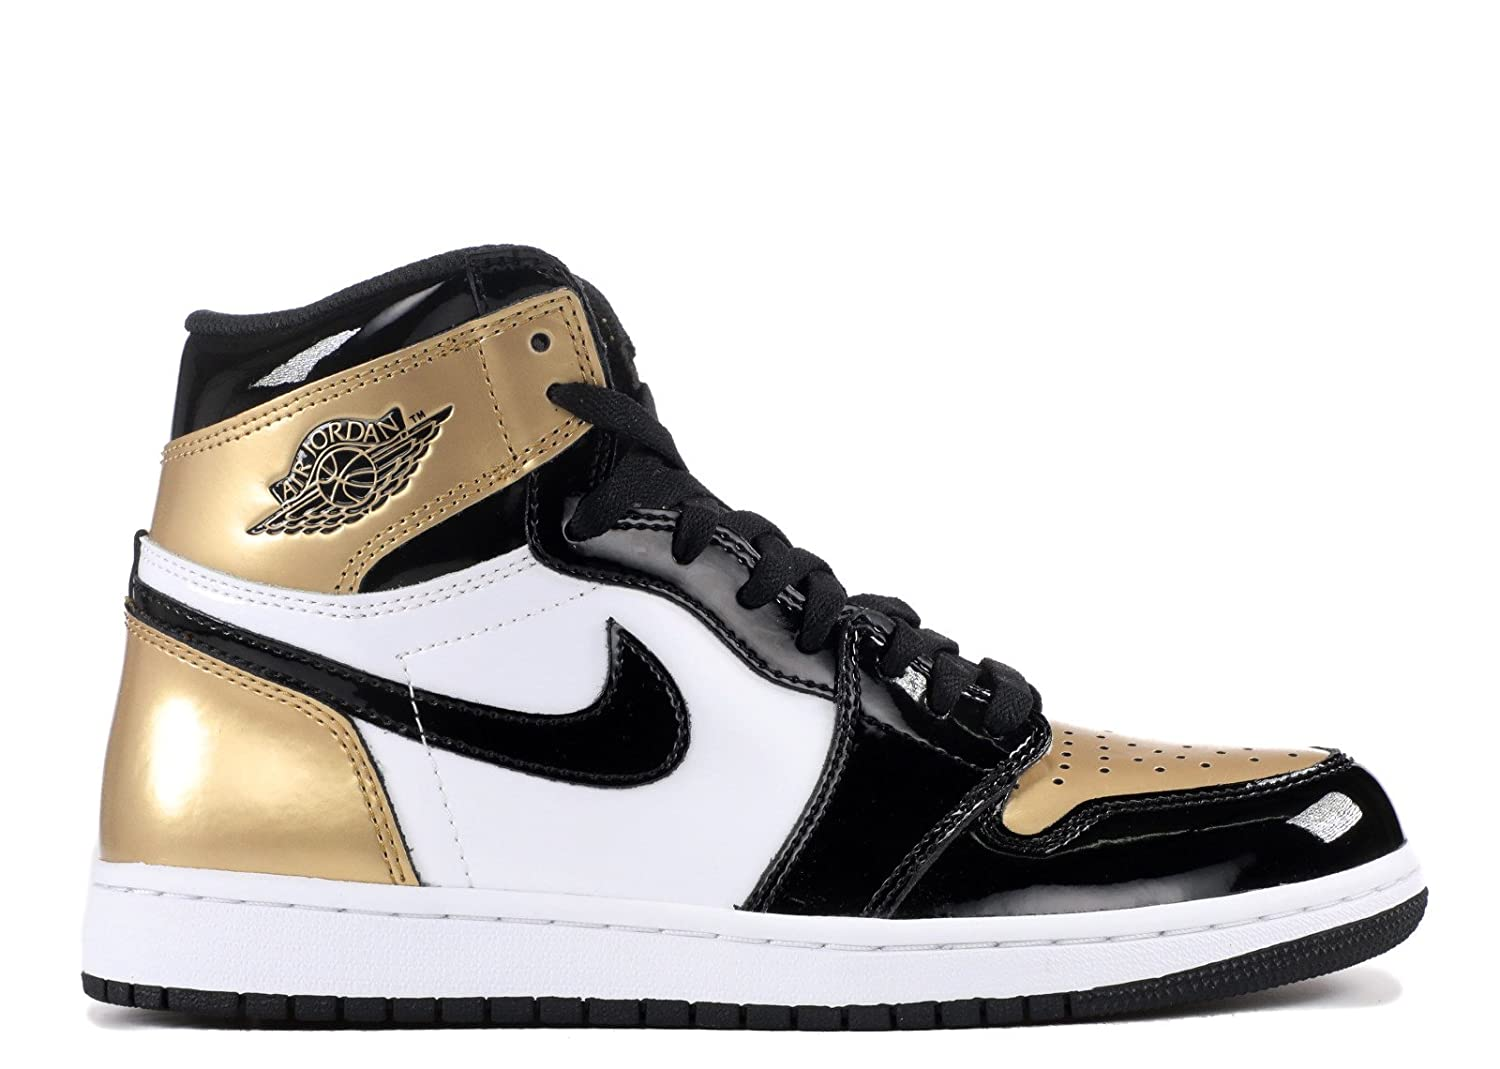 affordable price really comfortable quite nice Nike Mens Air Jordan 1 Retro High OG NRG Top 3